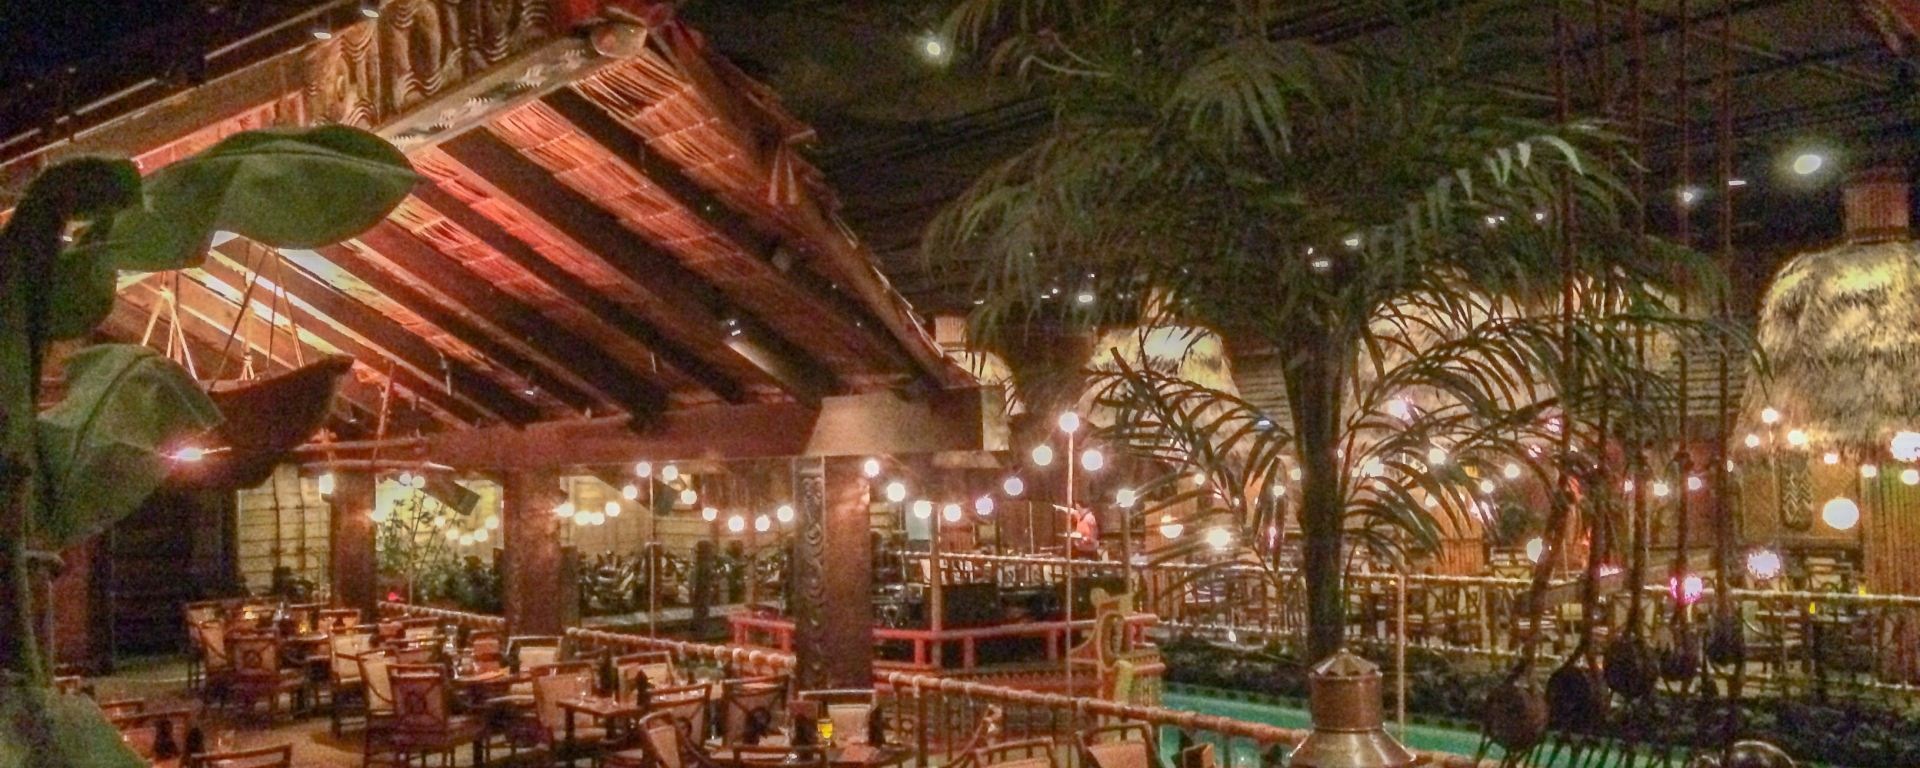 San Francisco S Tonga Room Is Hiring A Bartender Critiki News